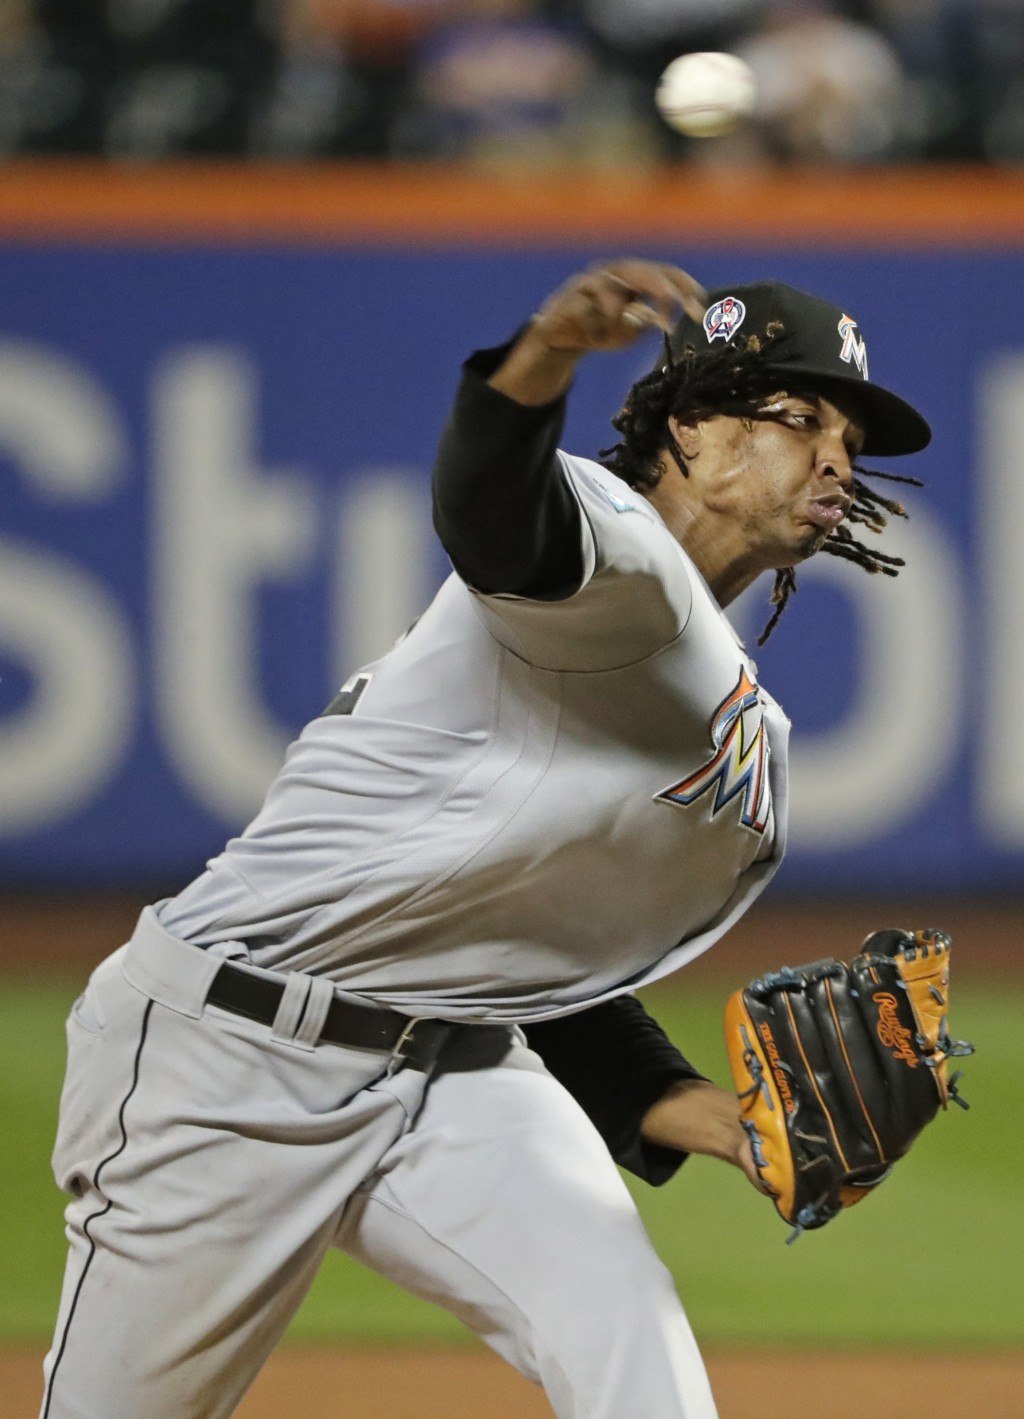 Miami Marlins' Jose Urena delivers a pitch during the fourth inning of a baseball game against the New York Mets Tuesday, Sept. 11, 2018, in New York.